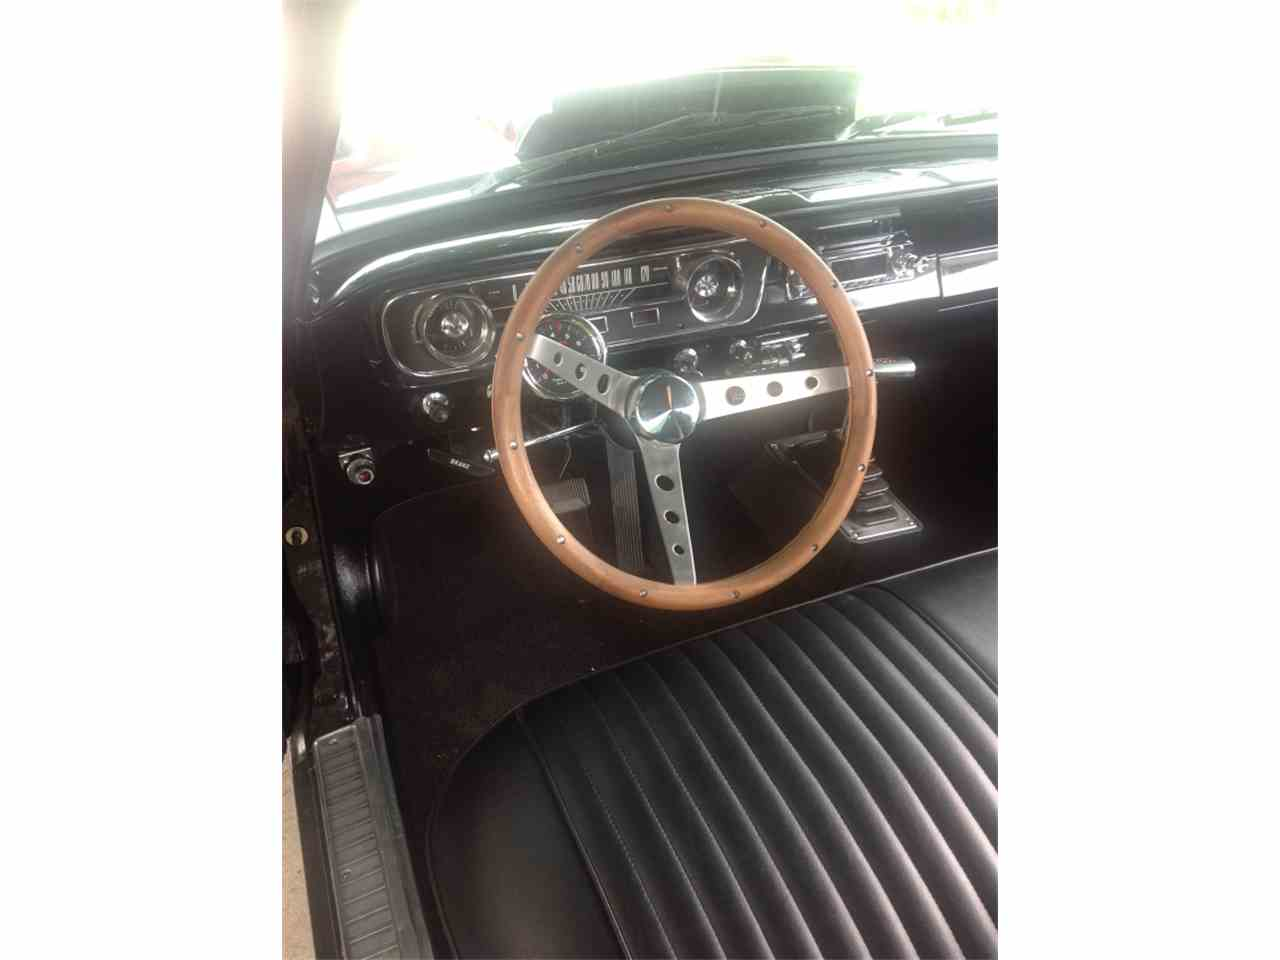 Large Picture of 1965 Ford Falcon located in Michigan - $25,900.00 - IGVF